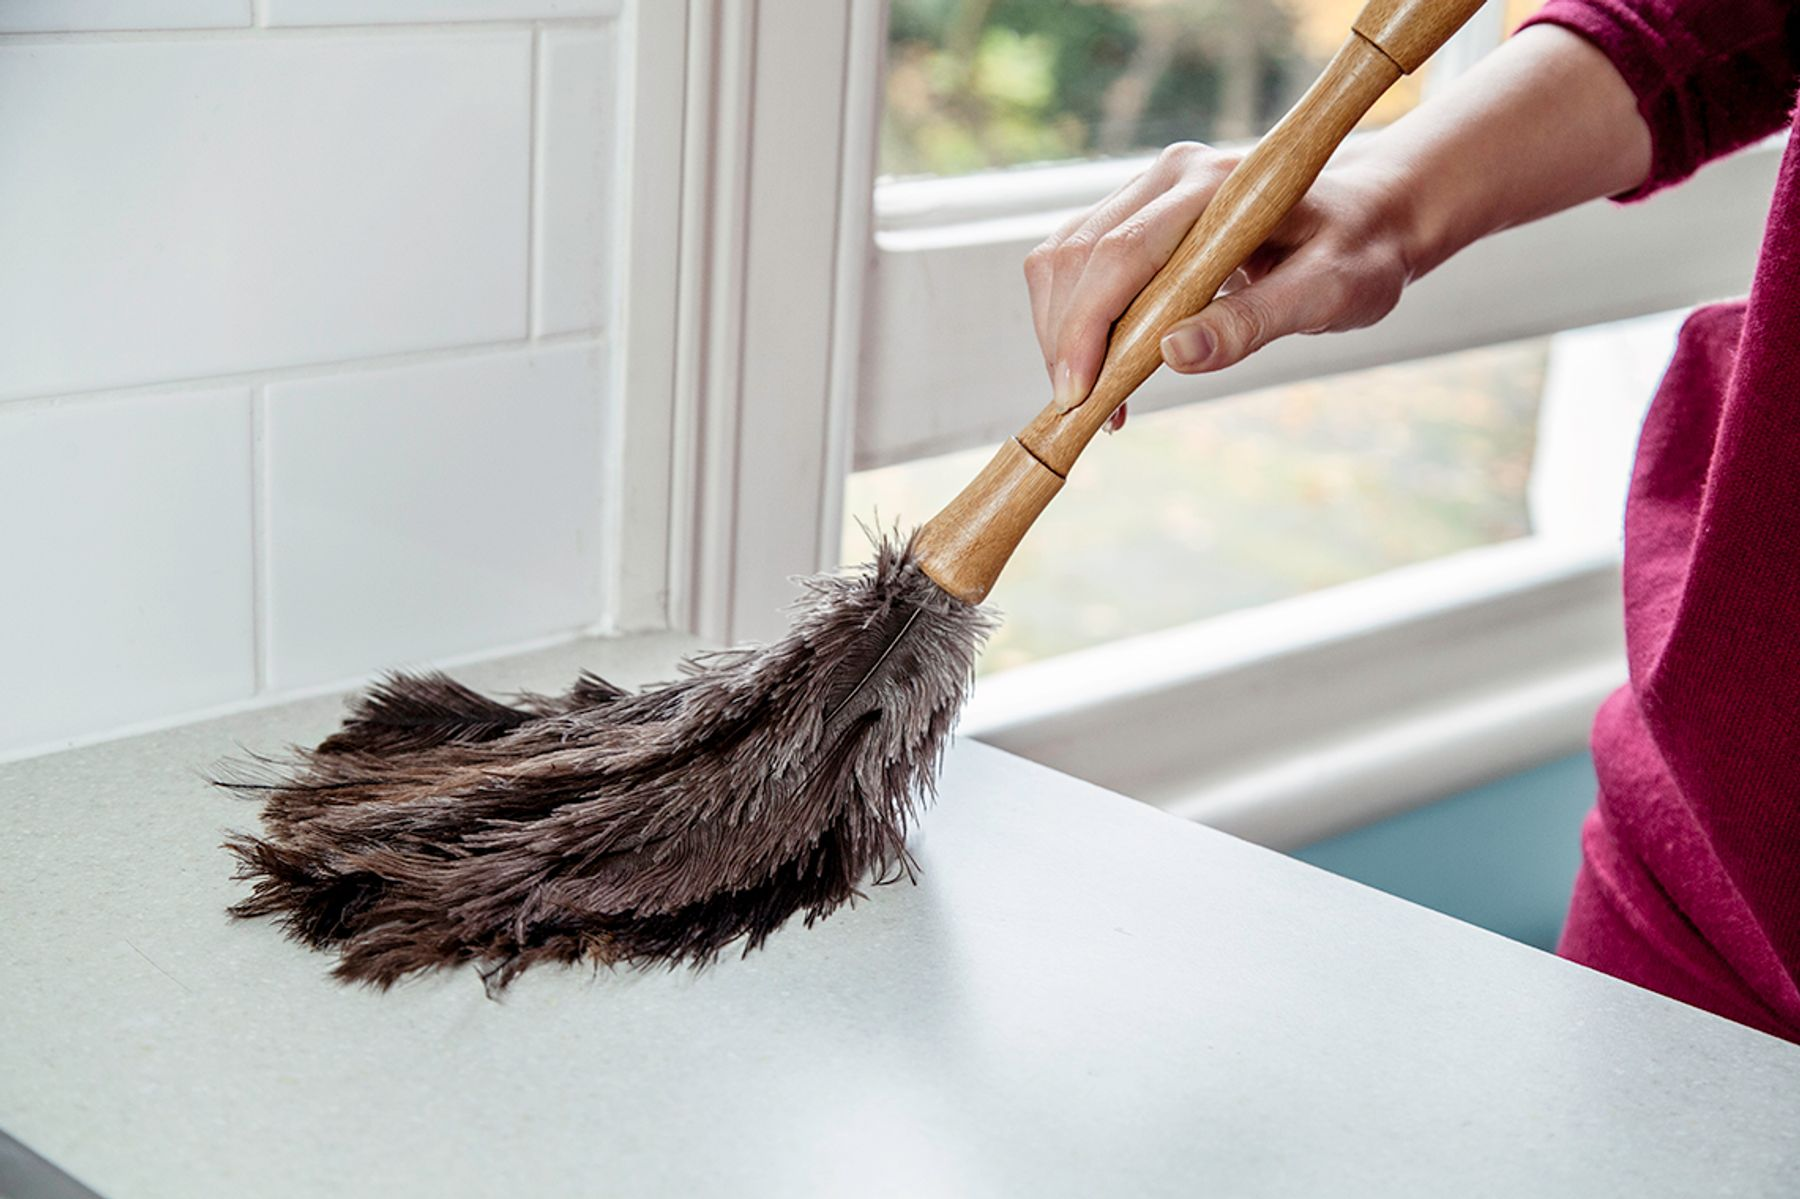 Step 7: A hand using a feather duster on a surface to freshen up when a house smells musty after vacation